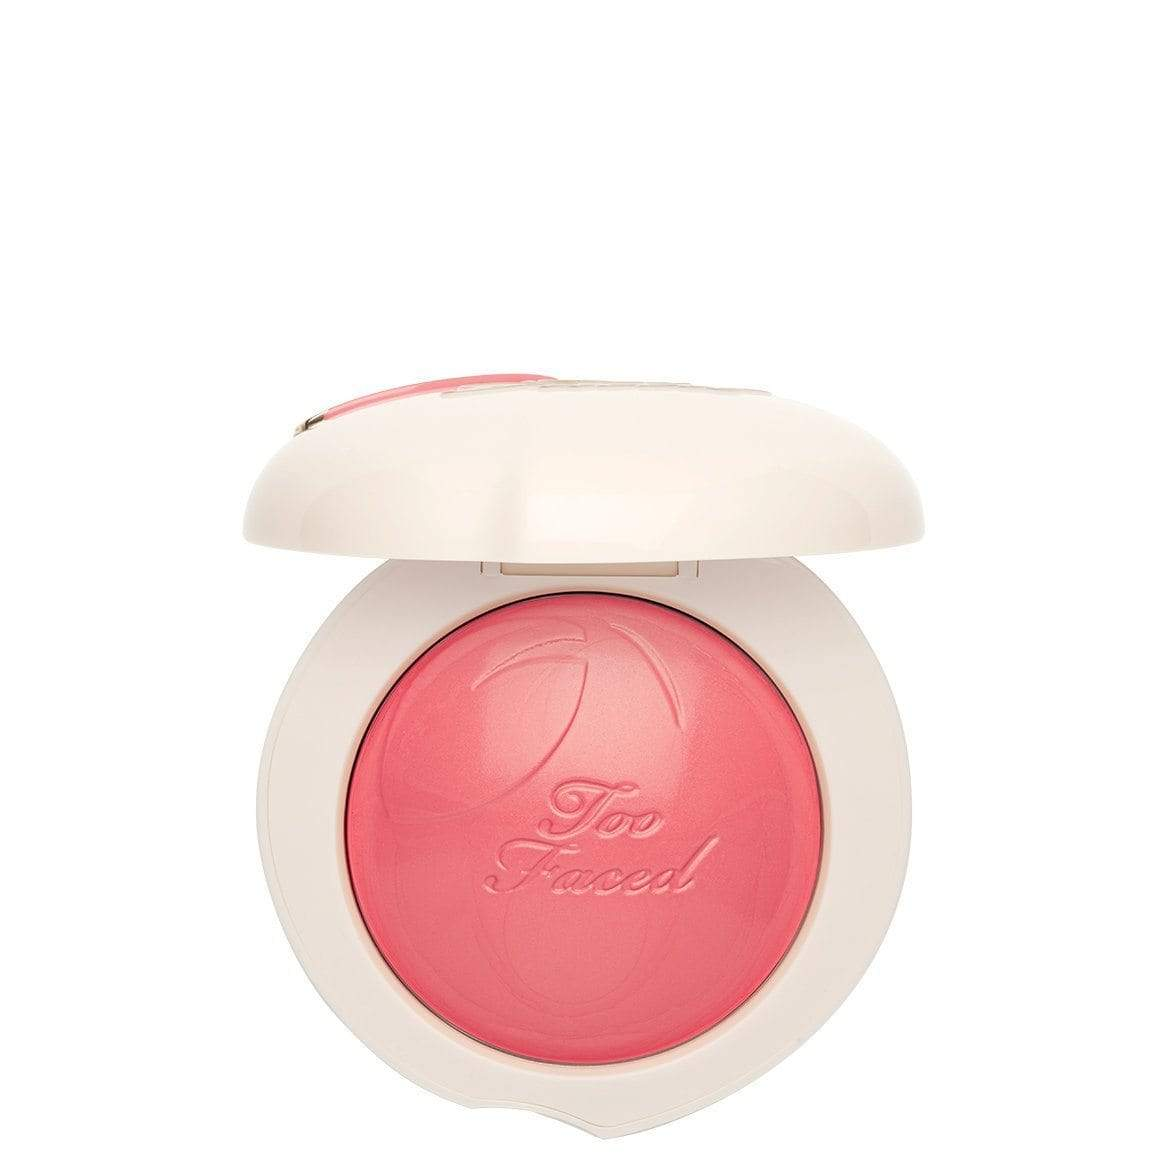 Too Faced Peach My Cheeks Melting Powder Blush – Peaches and Cream Collection: So Peachy, Blush, London Loves Beauty